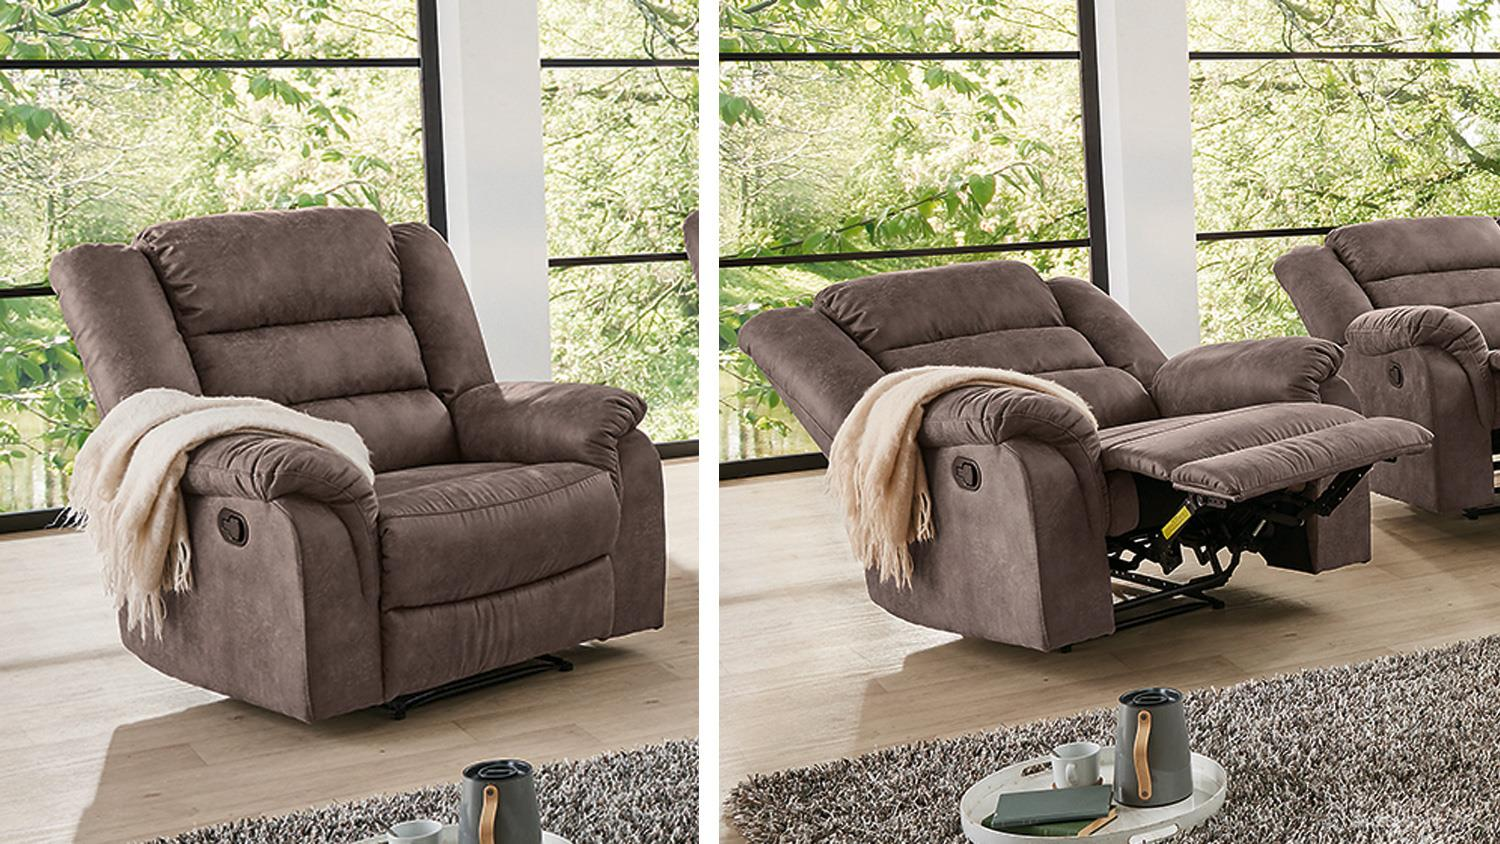 fernsehsessel cleveland sessel sofa relaxsessel mit funktion in braun. Black Bedroom Furniture Sets. Home Design Ideas